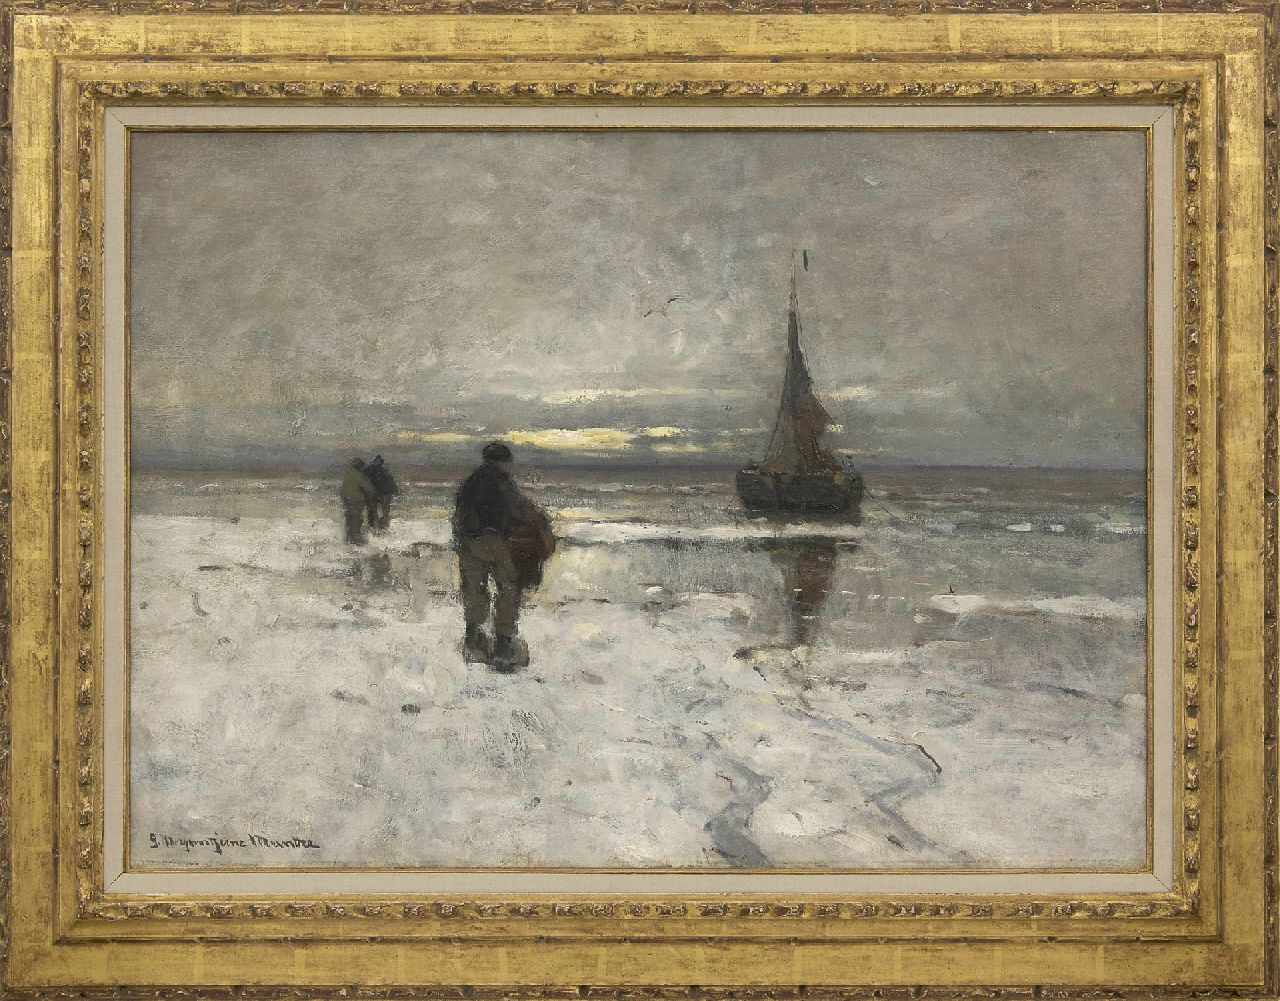 Munthe G.A.L.  | Gerhard Arij Ludwig 'Morgenstjerne' Munthe | Paintings offered for sale | The beach in winter, oil on canvas 54.0 x 75.1 cm, signed l.l.